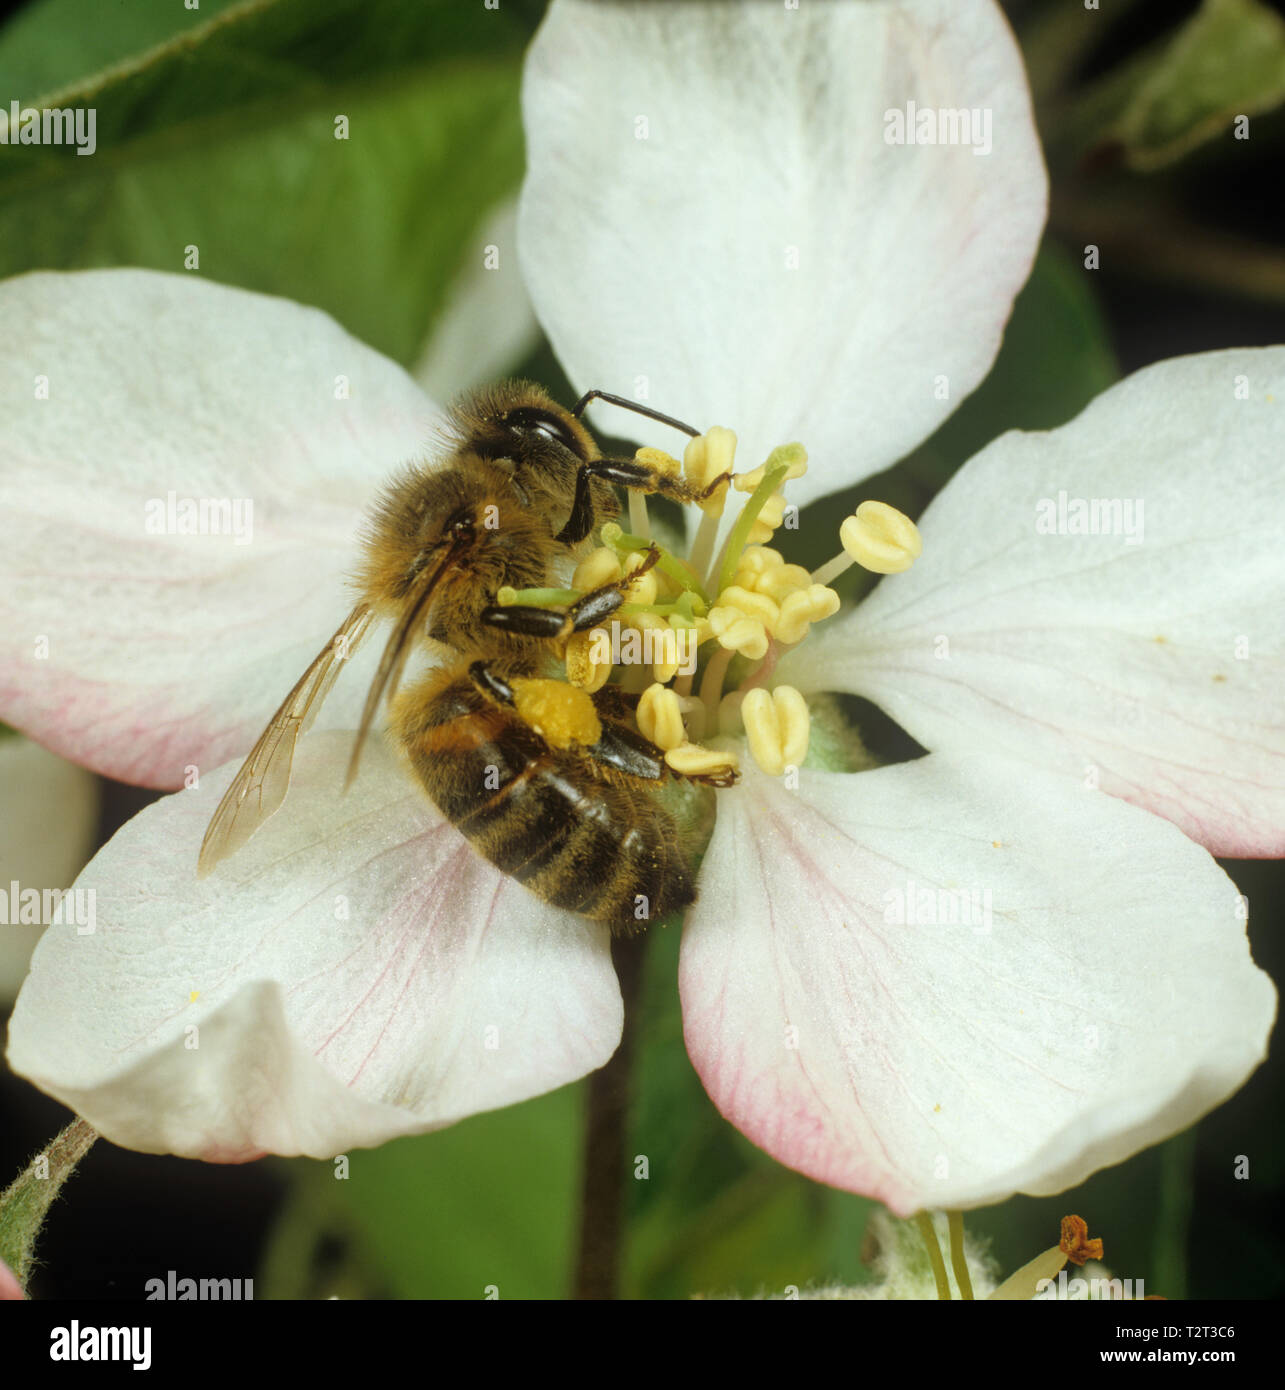 Worker honey bee (Apis mellifera) gathering pollen in pollen sacs or corbiculae from apple blossom - Stock Image